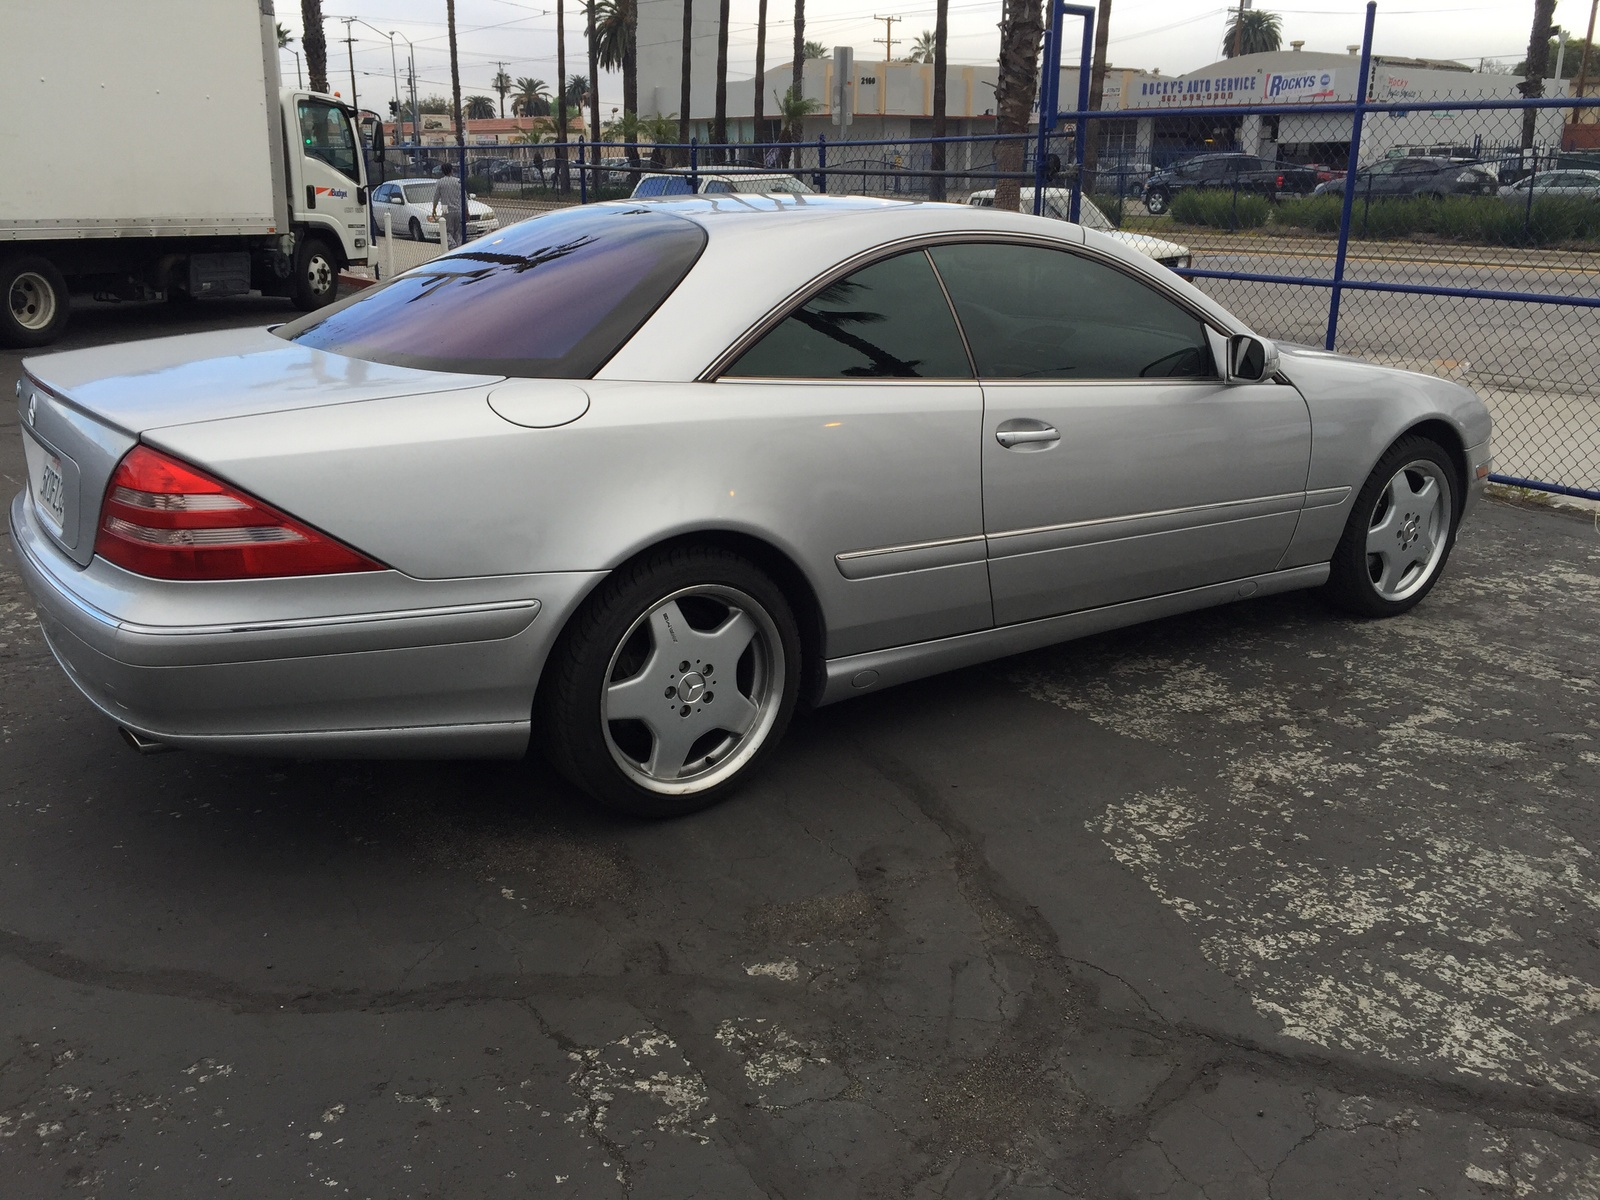 Picture of 2001 Mercedes-Benz CL-Class 2 Dr CL500 Coupe